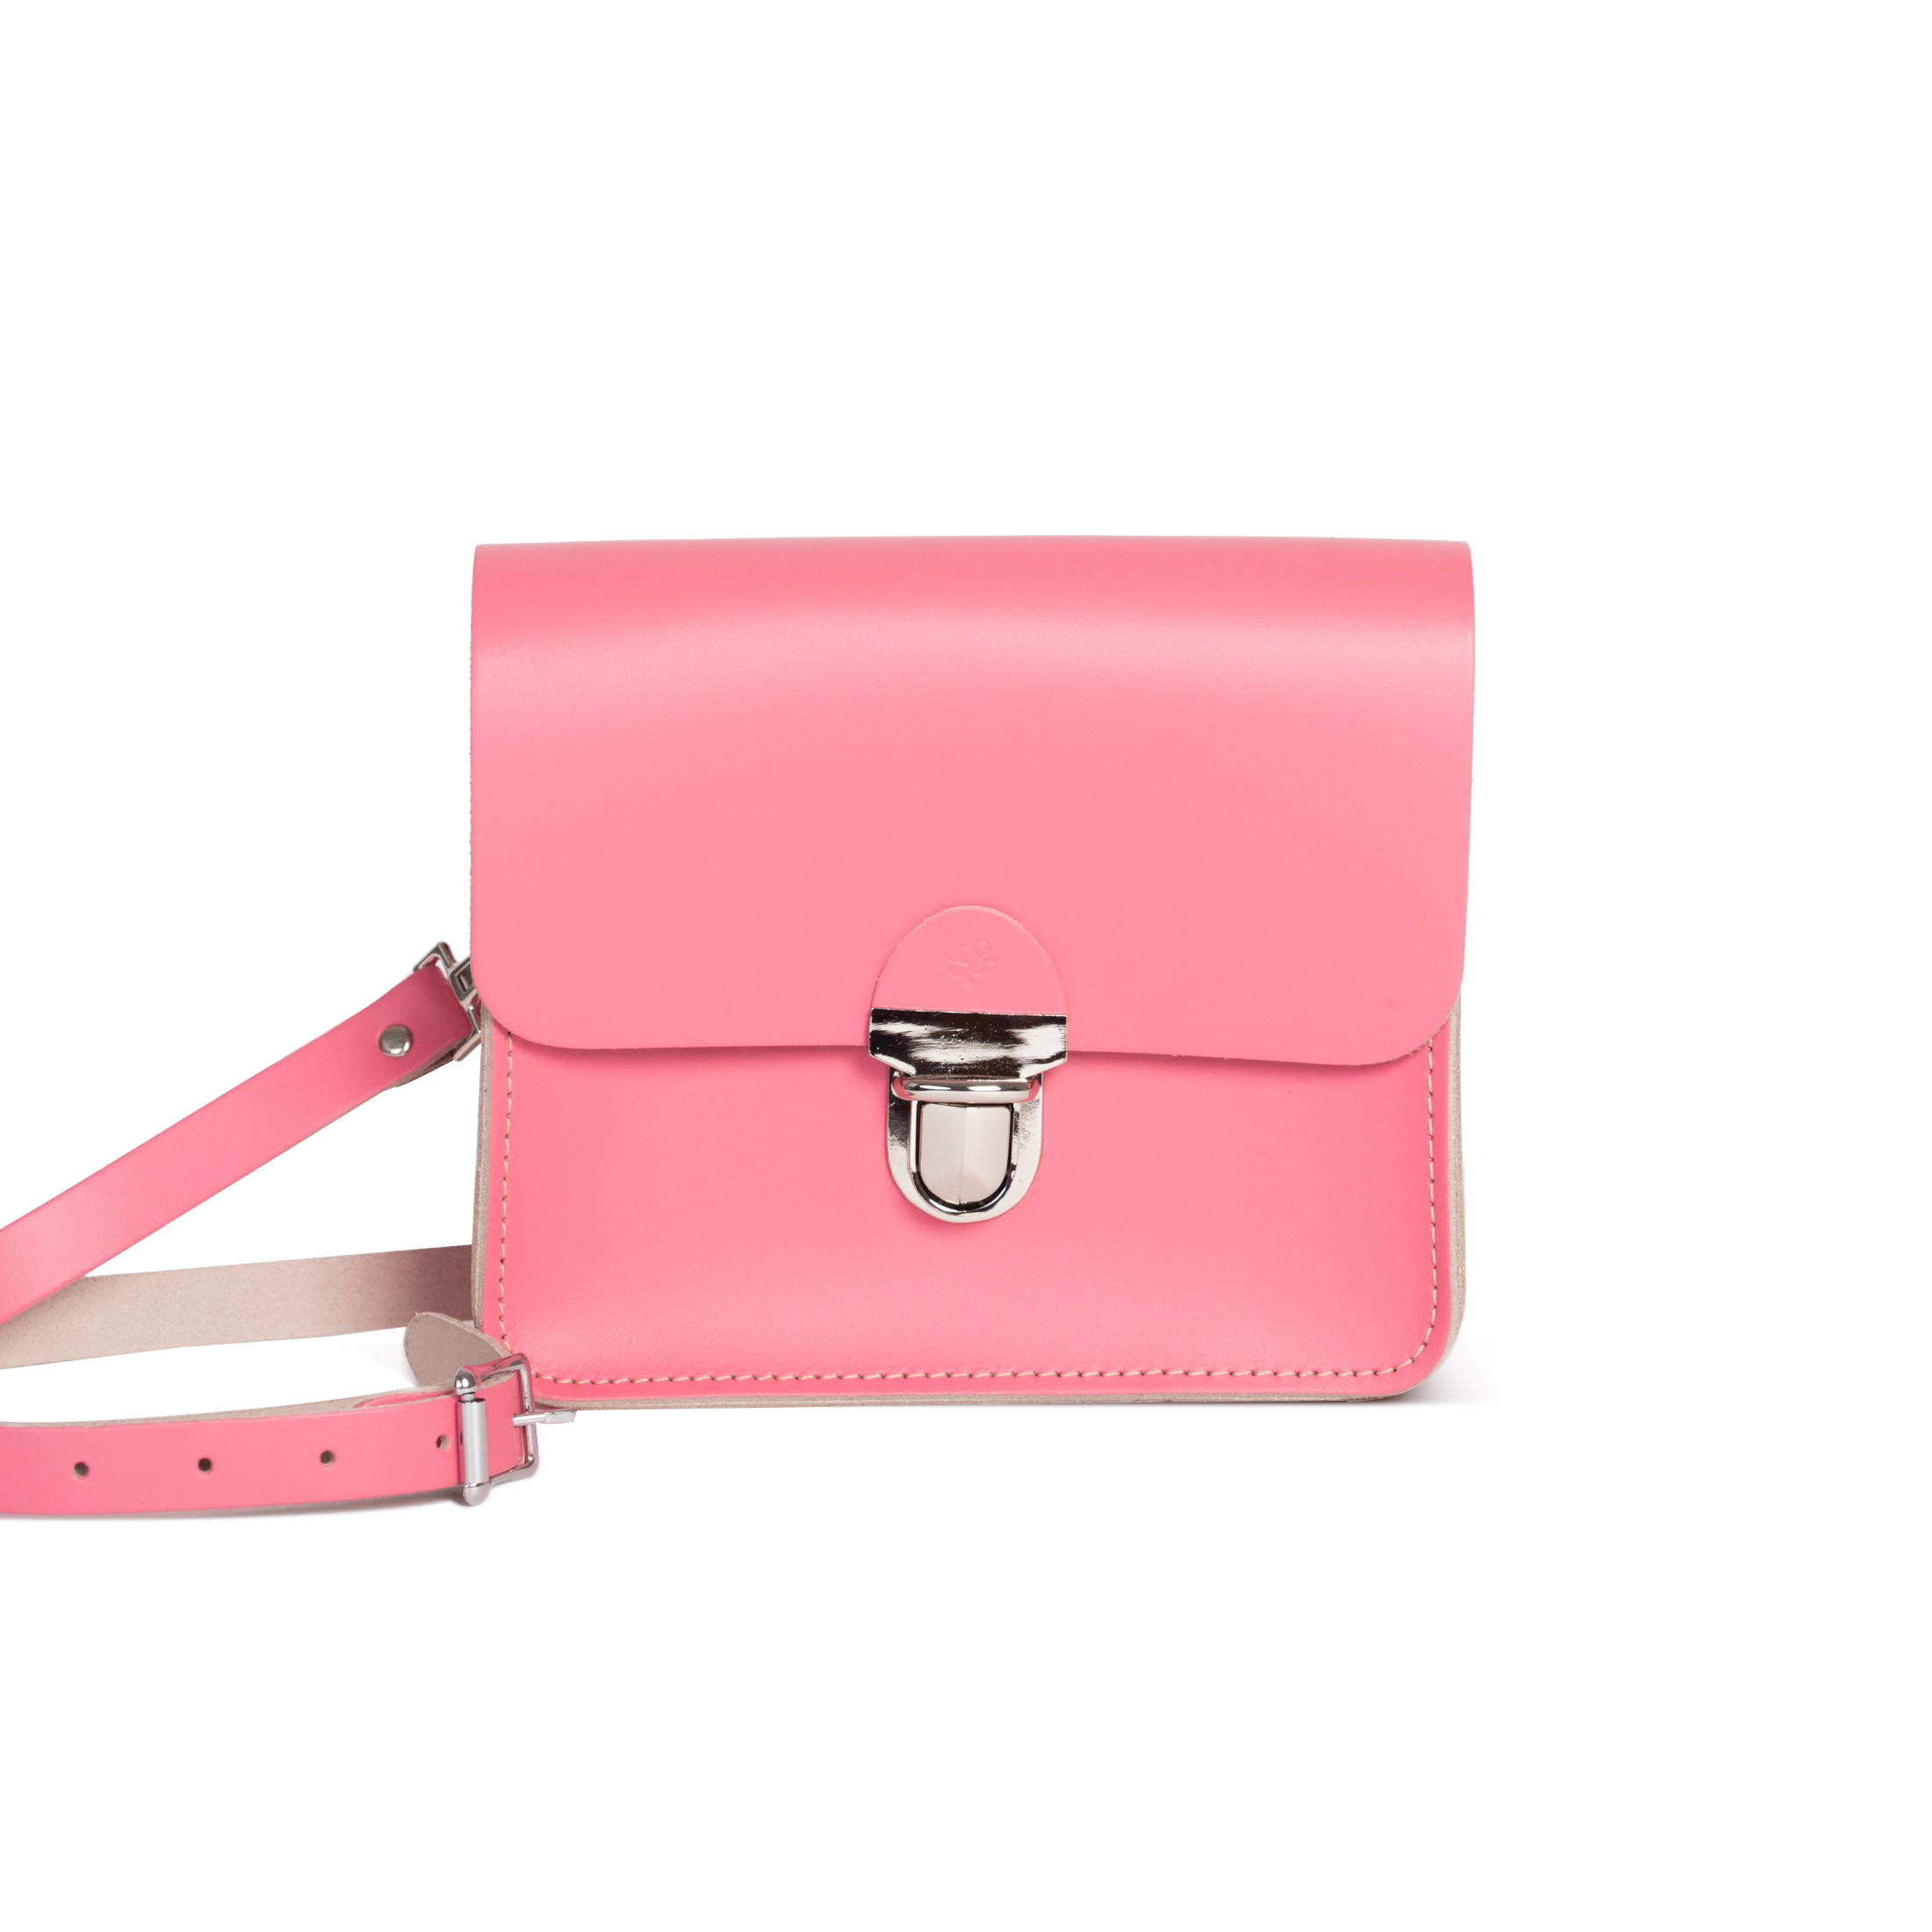 Sofia Premium Leather Crossbody Bag in Pastel Pink